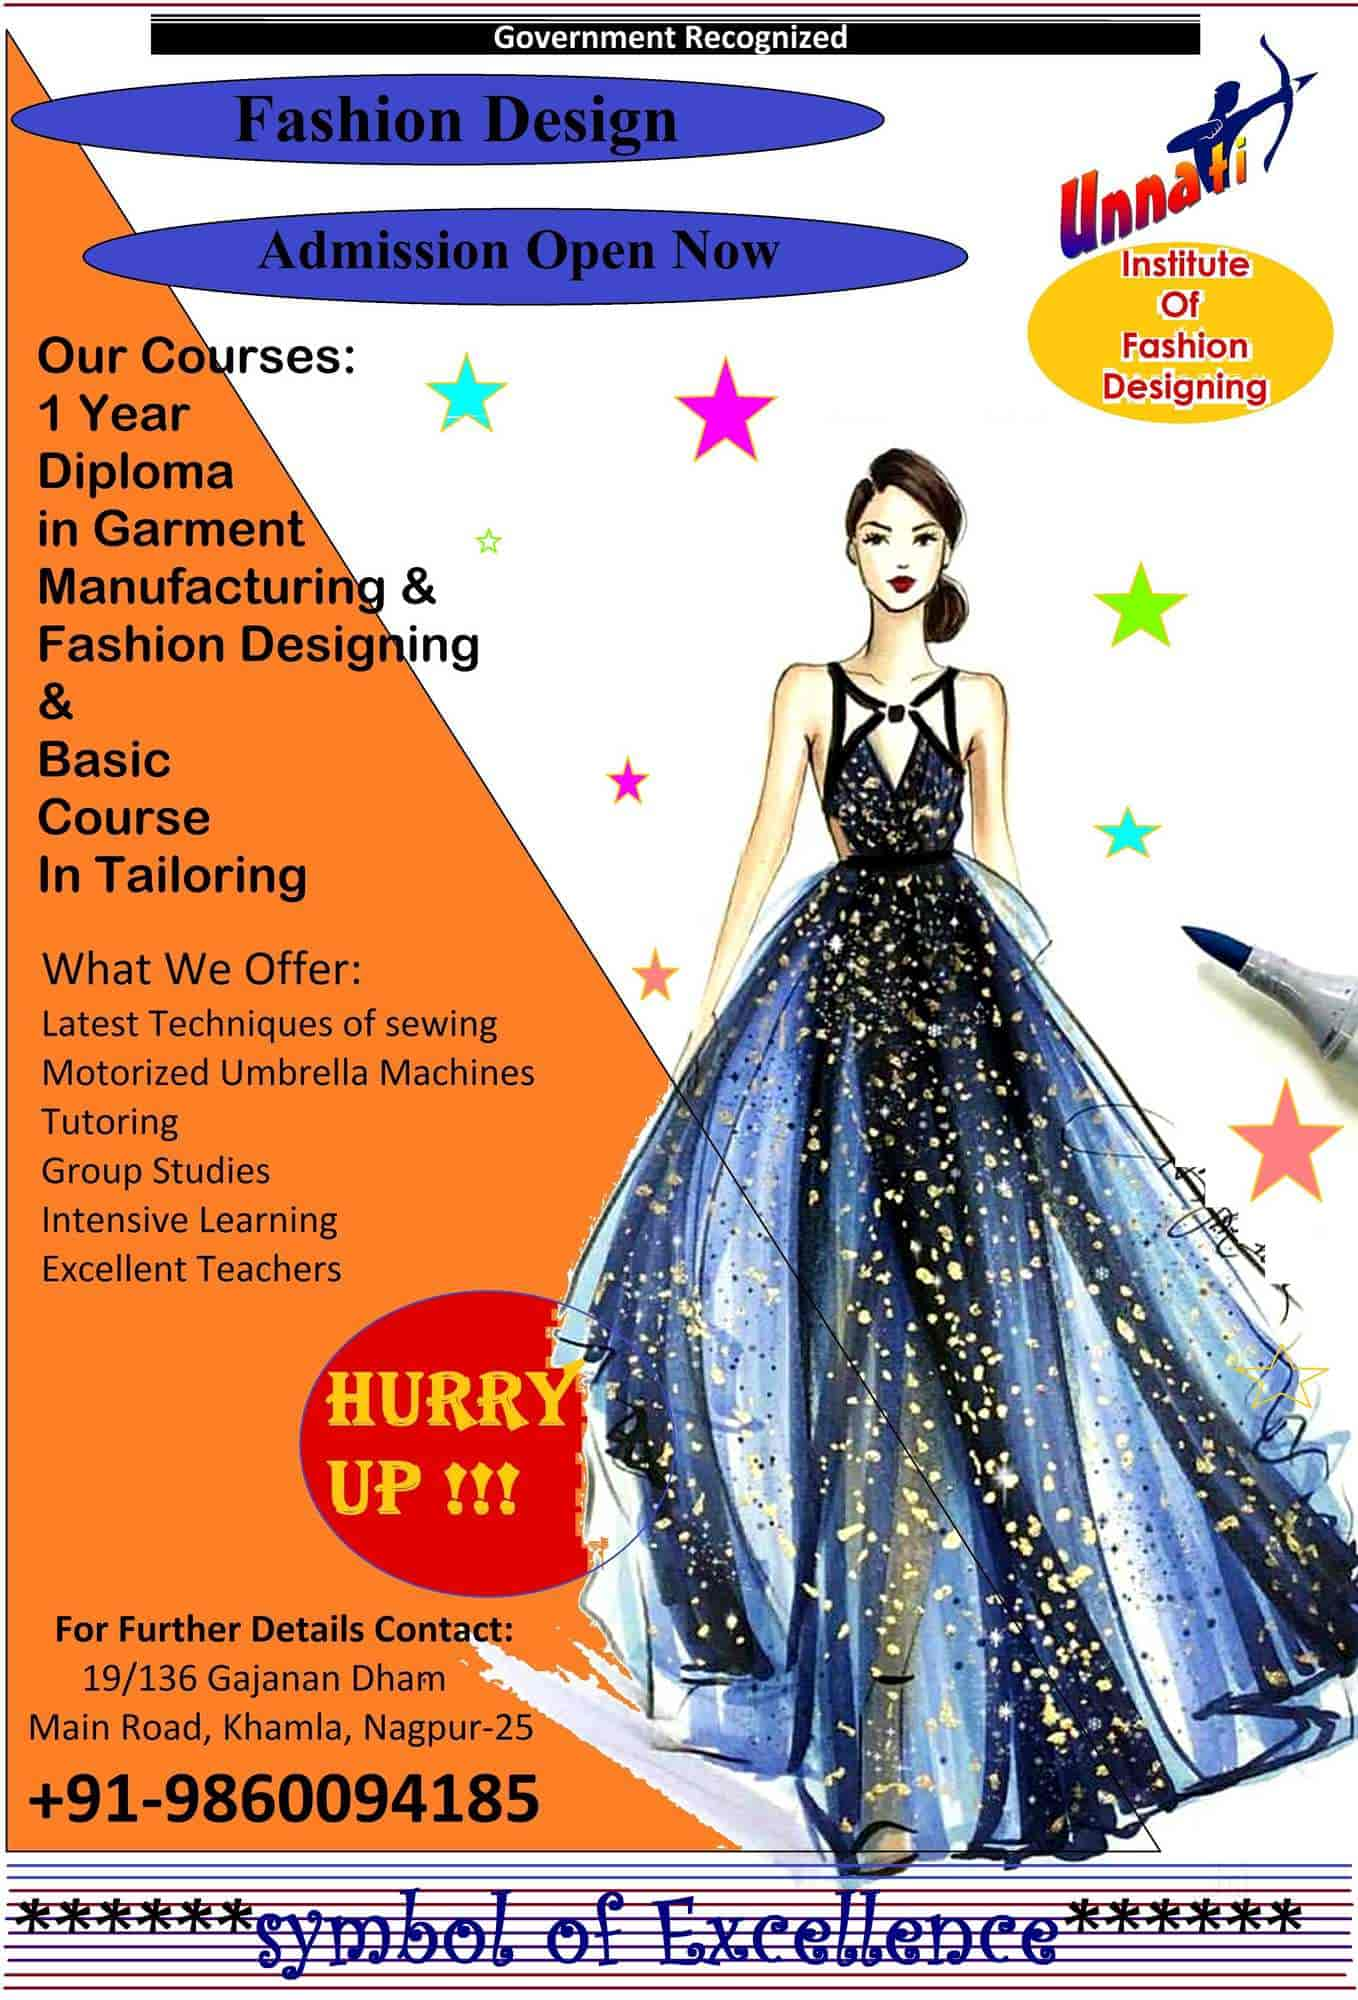 Unnati Institute Of Fashion Designing Khamla Institutes In Nagpur Justdial